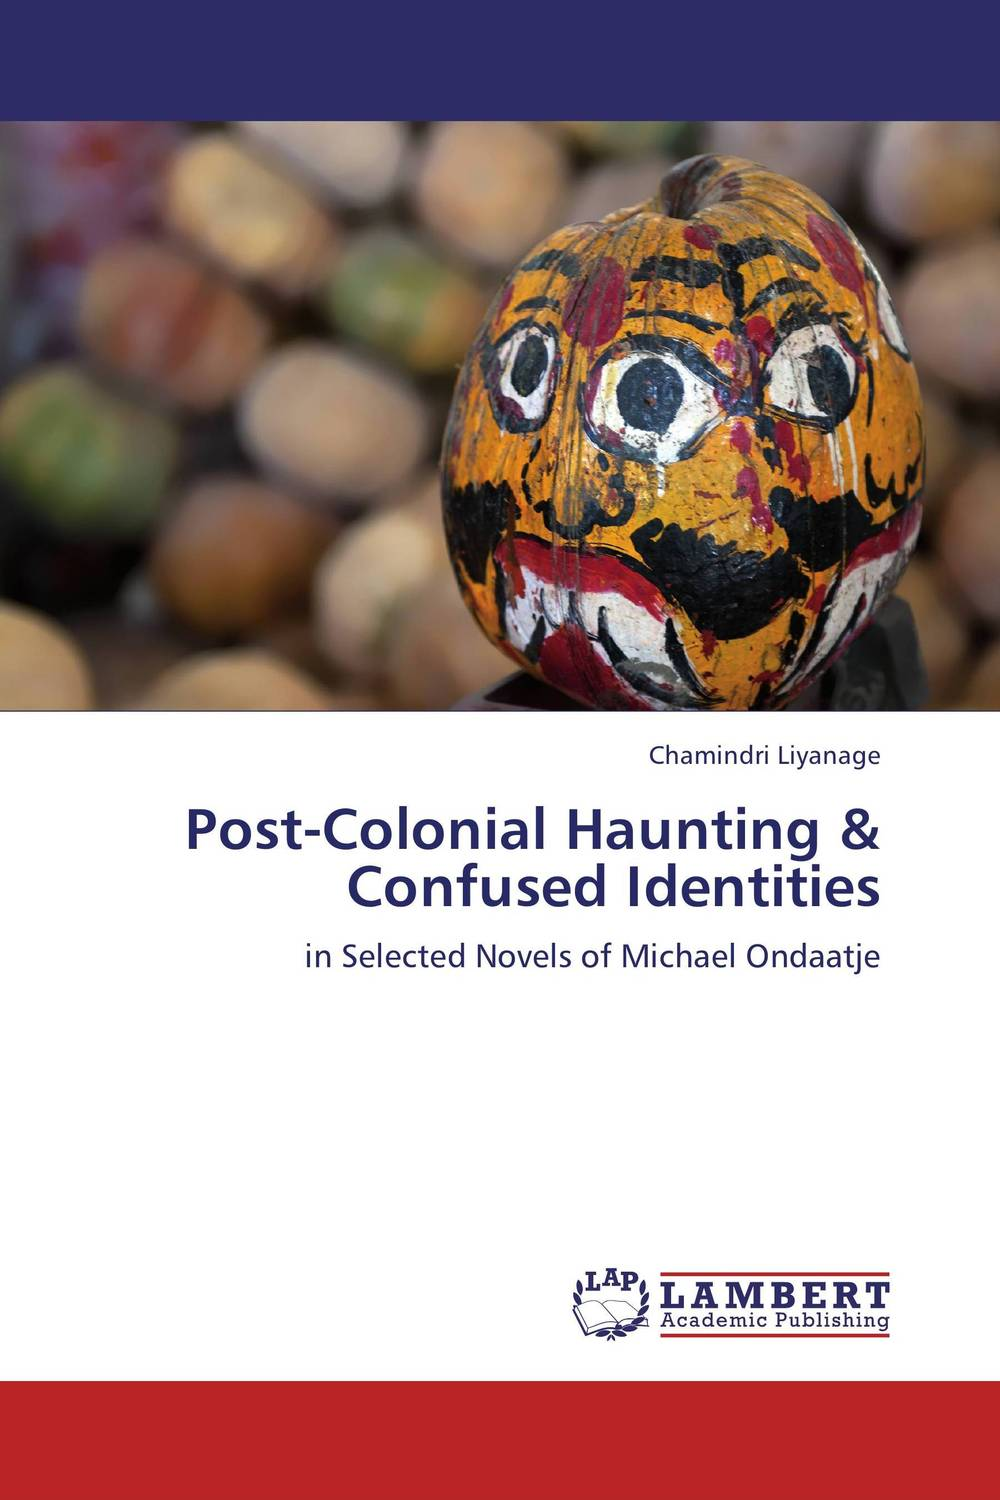 Post-Colonial Haunting & Confused Identities shailaja menon ahmedabad colonial imagery and urban mindscapes